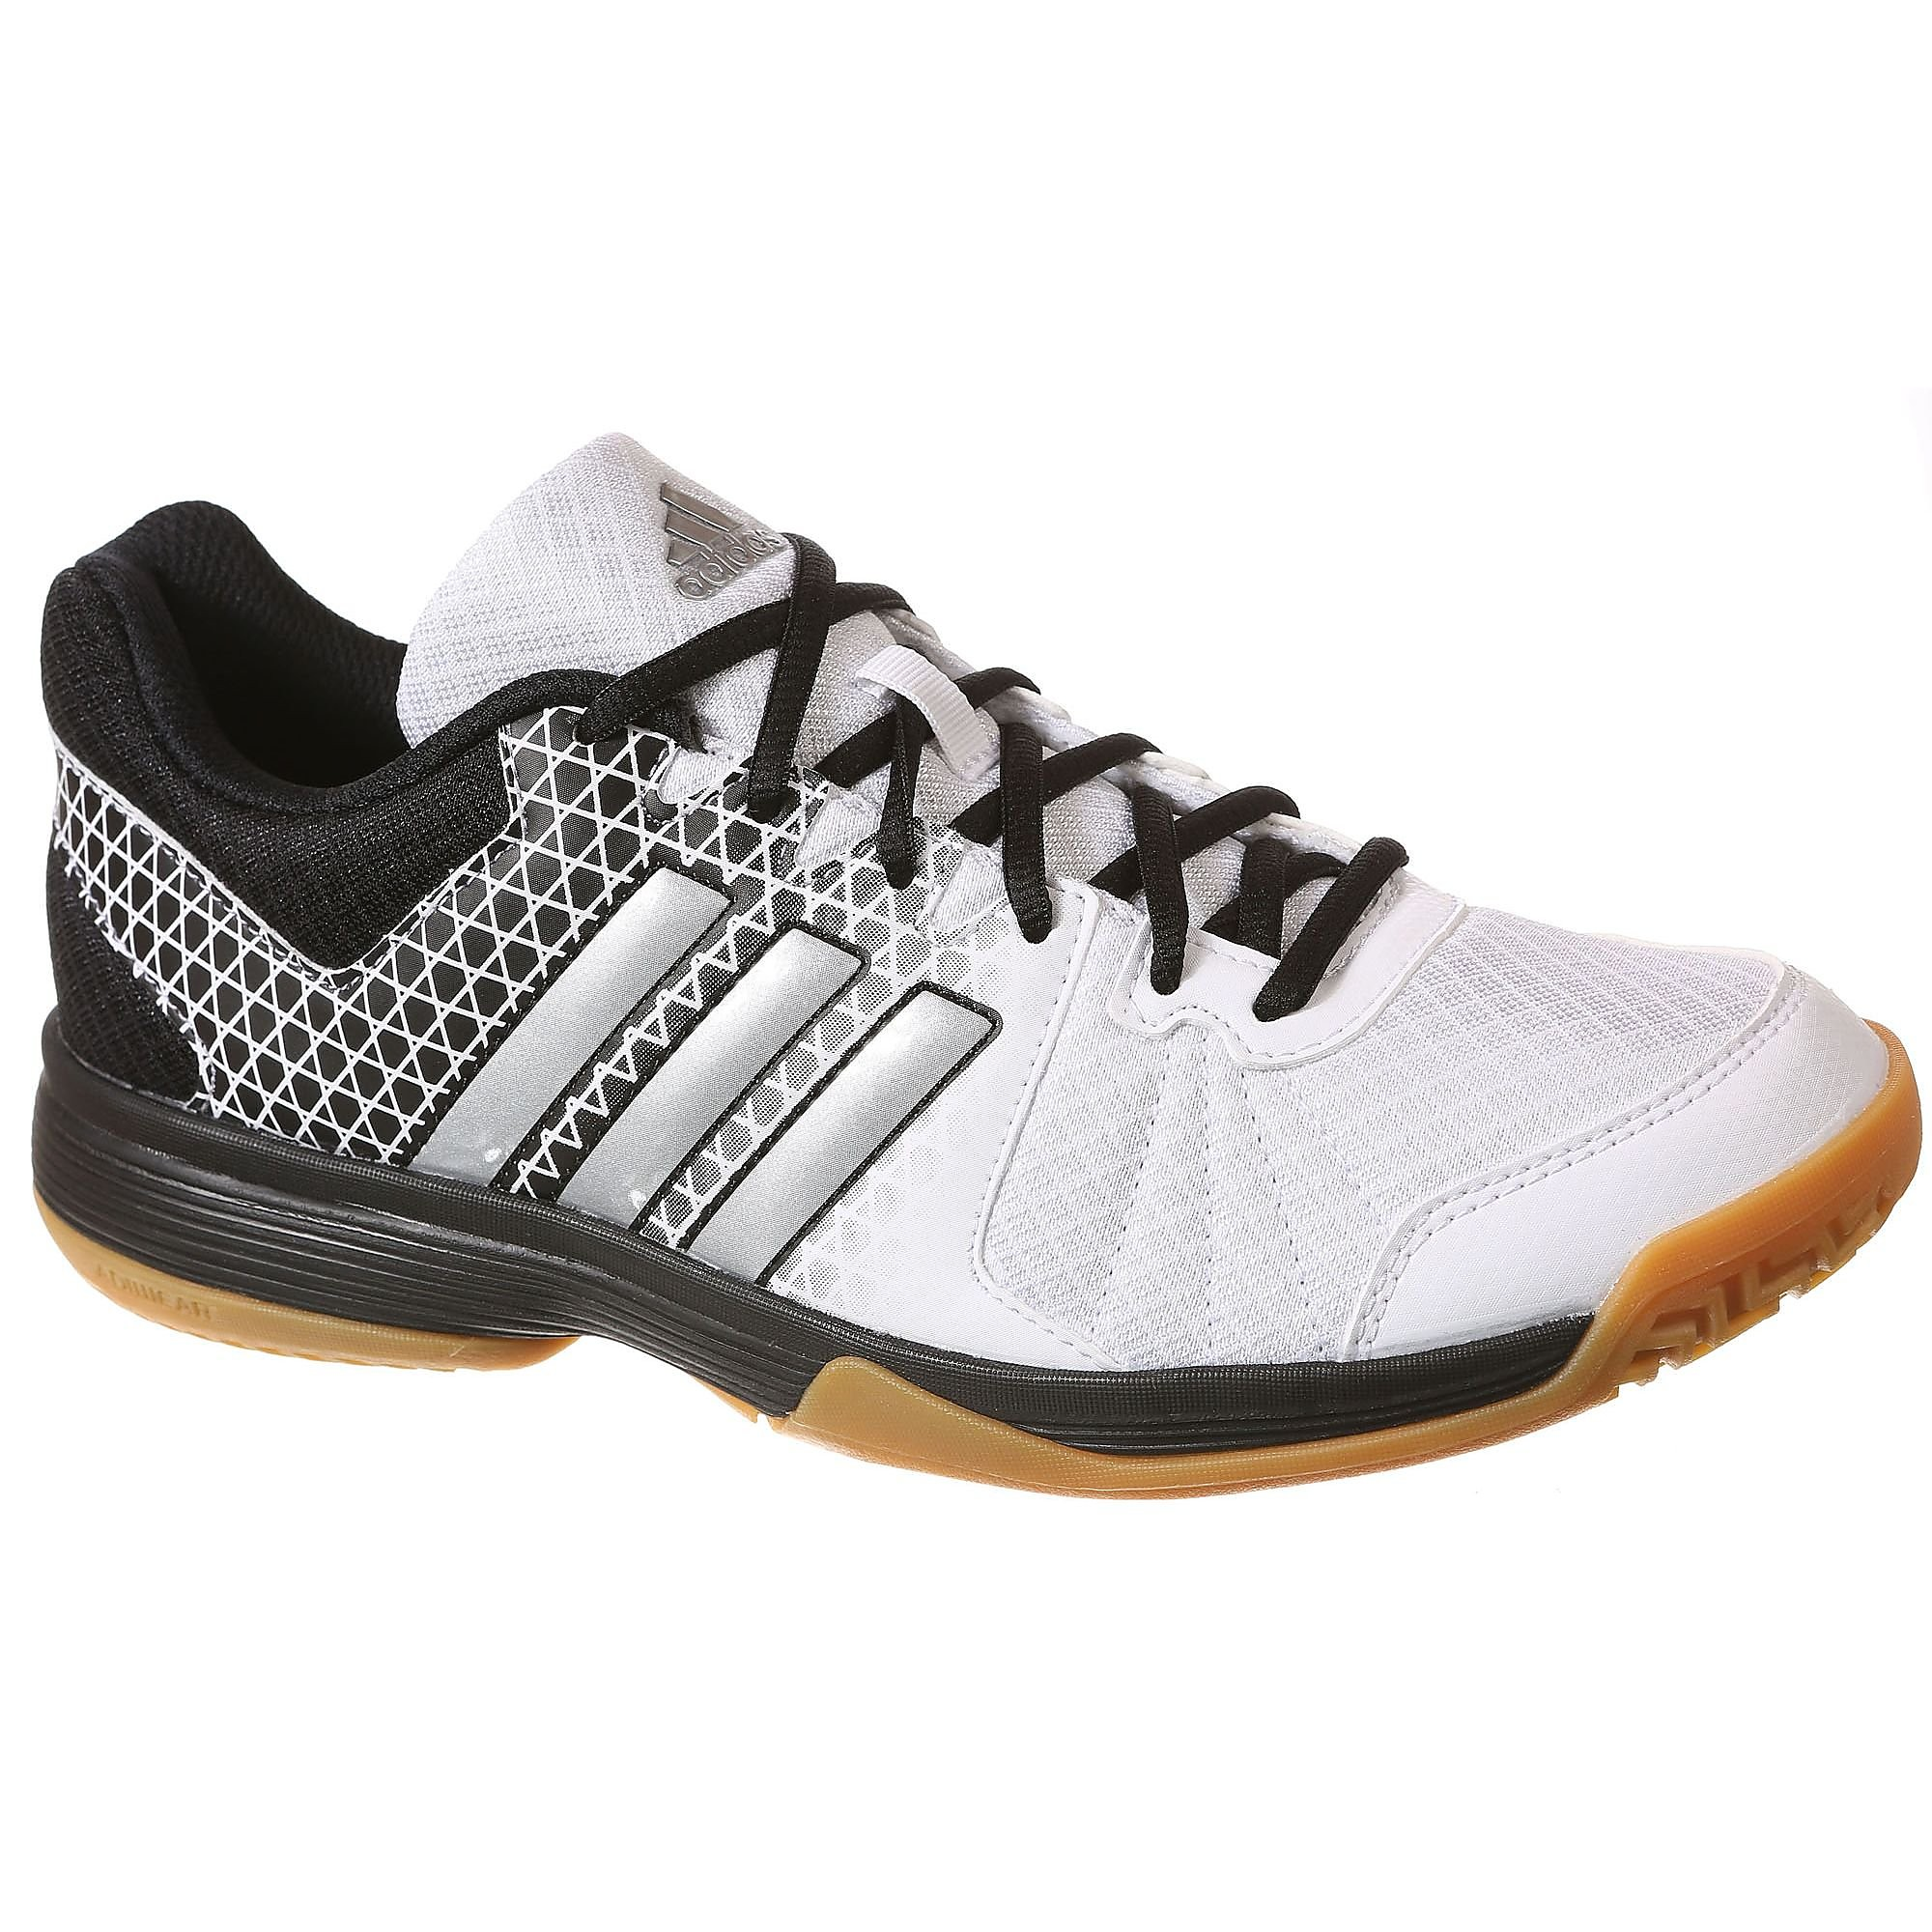 adidas Ligra 4 Schoenen, Wit, 39 1-3, Female, Volleybal